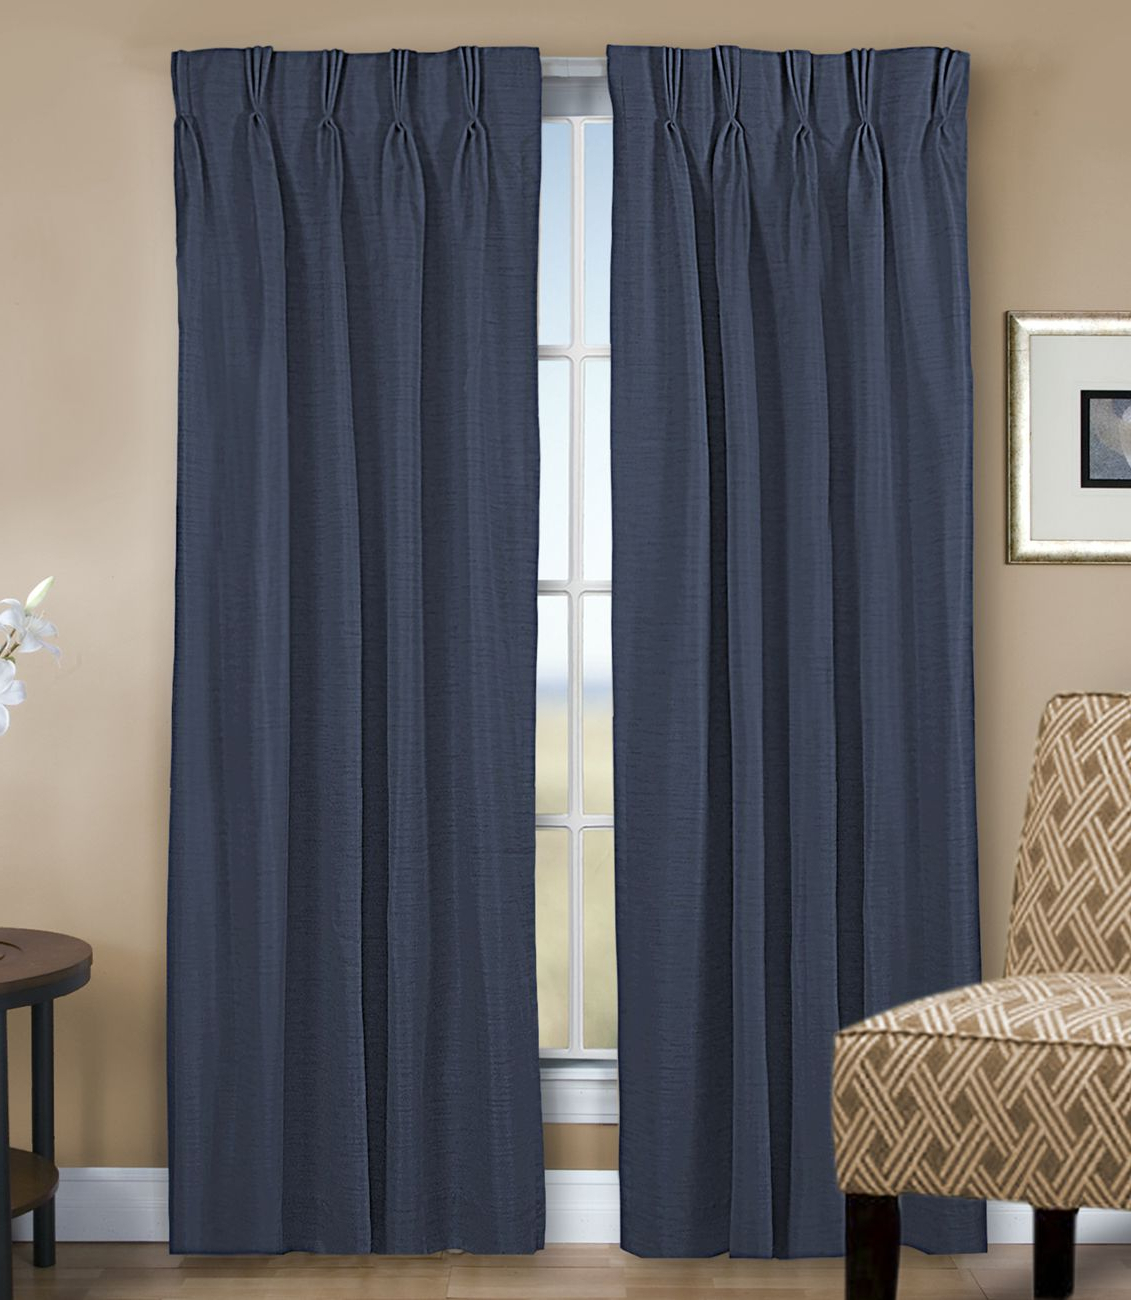 2020 Grasscloth Lined Pinch Pleated (dual Header) Drapery Pair Regarding Double Pinch Pleat Top Curtain Panel Pairs (View 15 of 20)